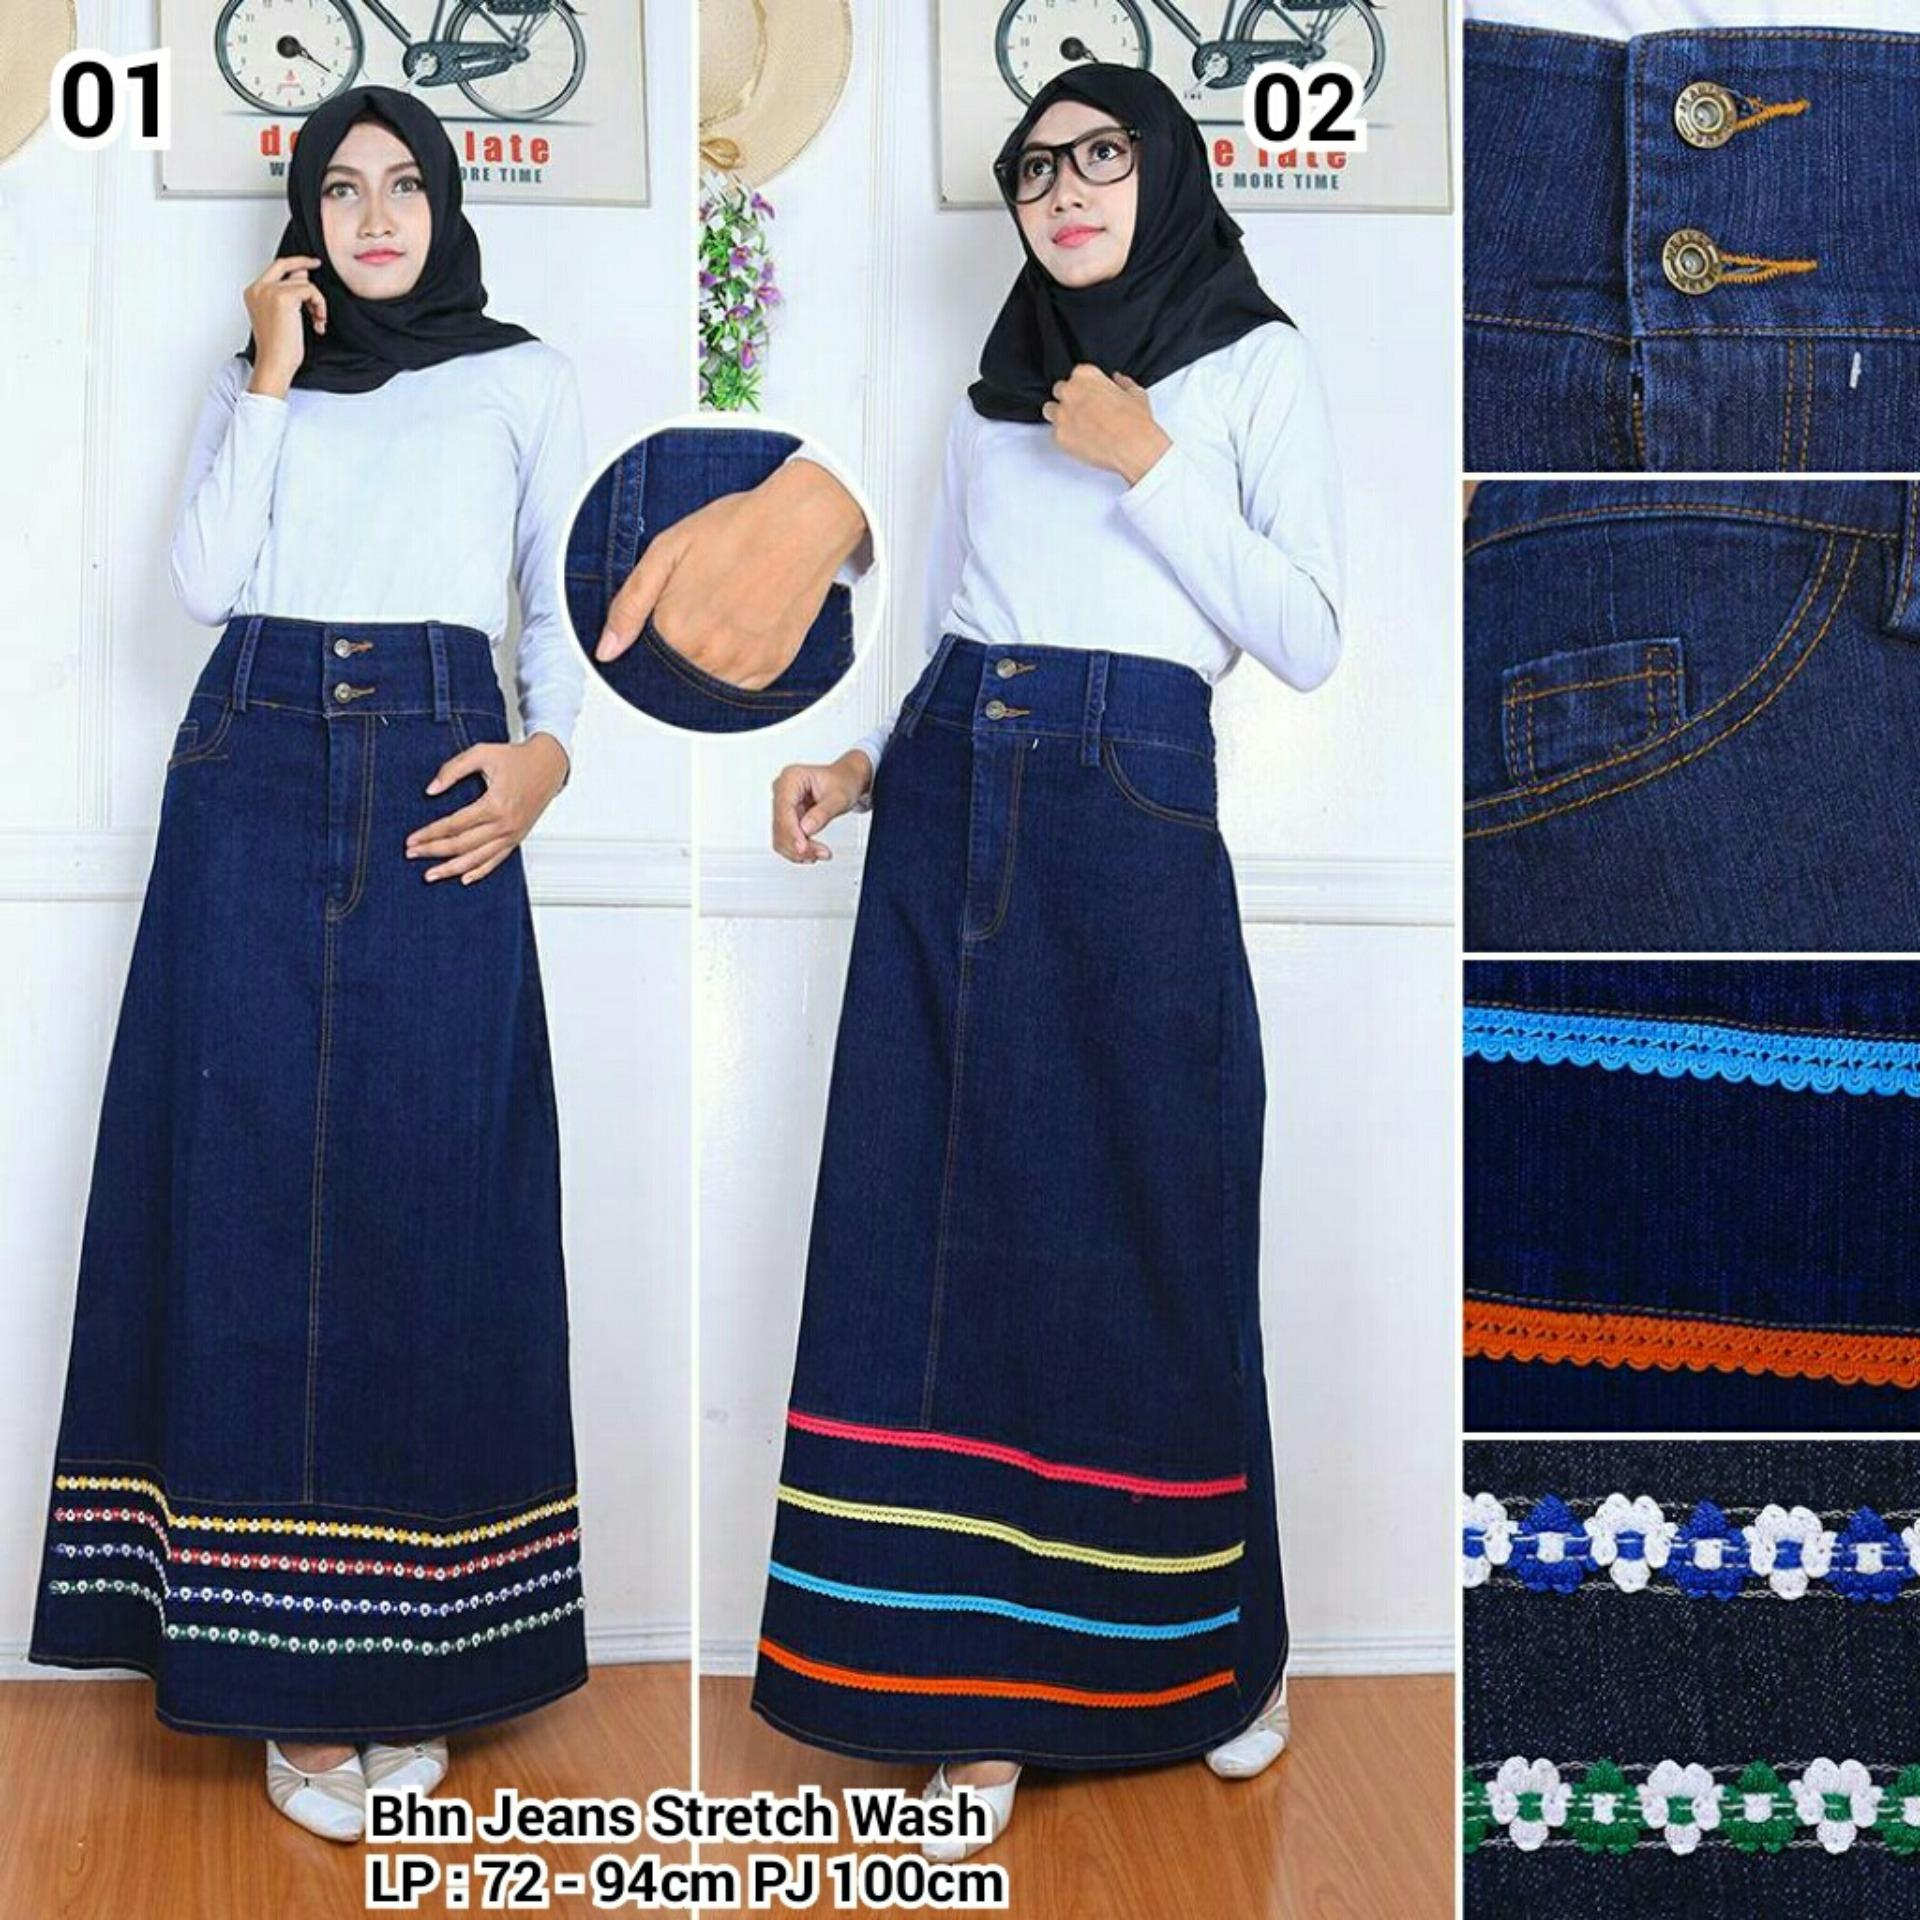 Spesifikasi Sb Collection Rok Maxi Jeans Sinta Long Skirt 02 Biru Tua Yang Bagus Dan Murah